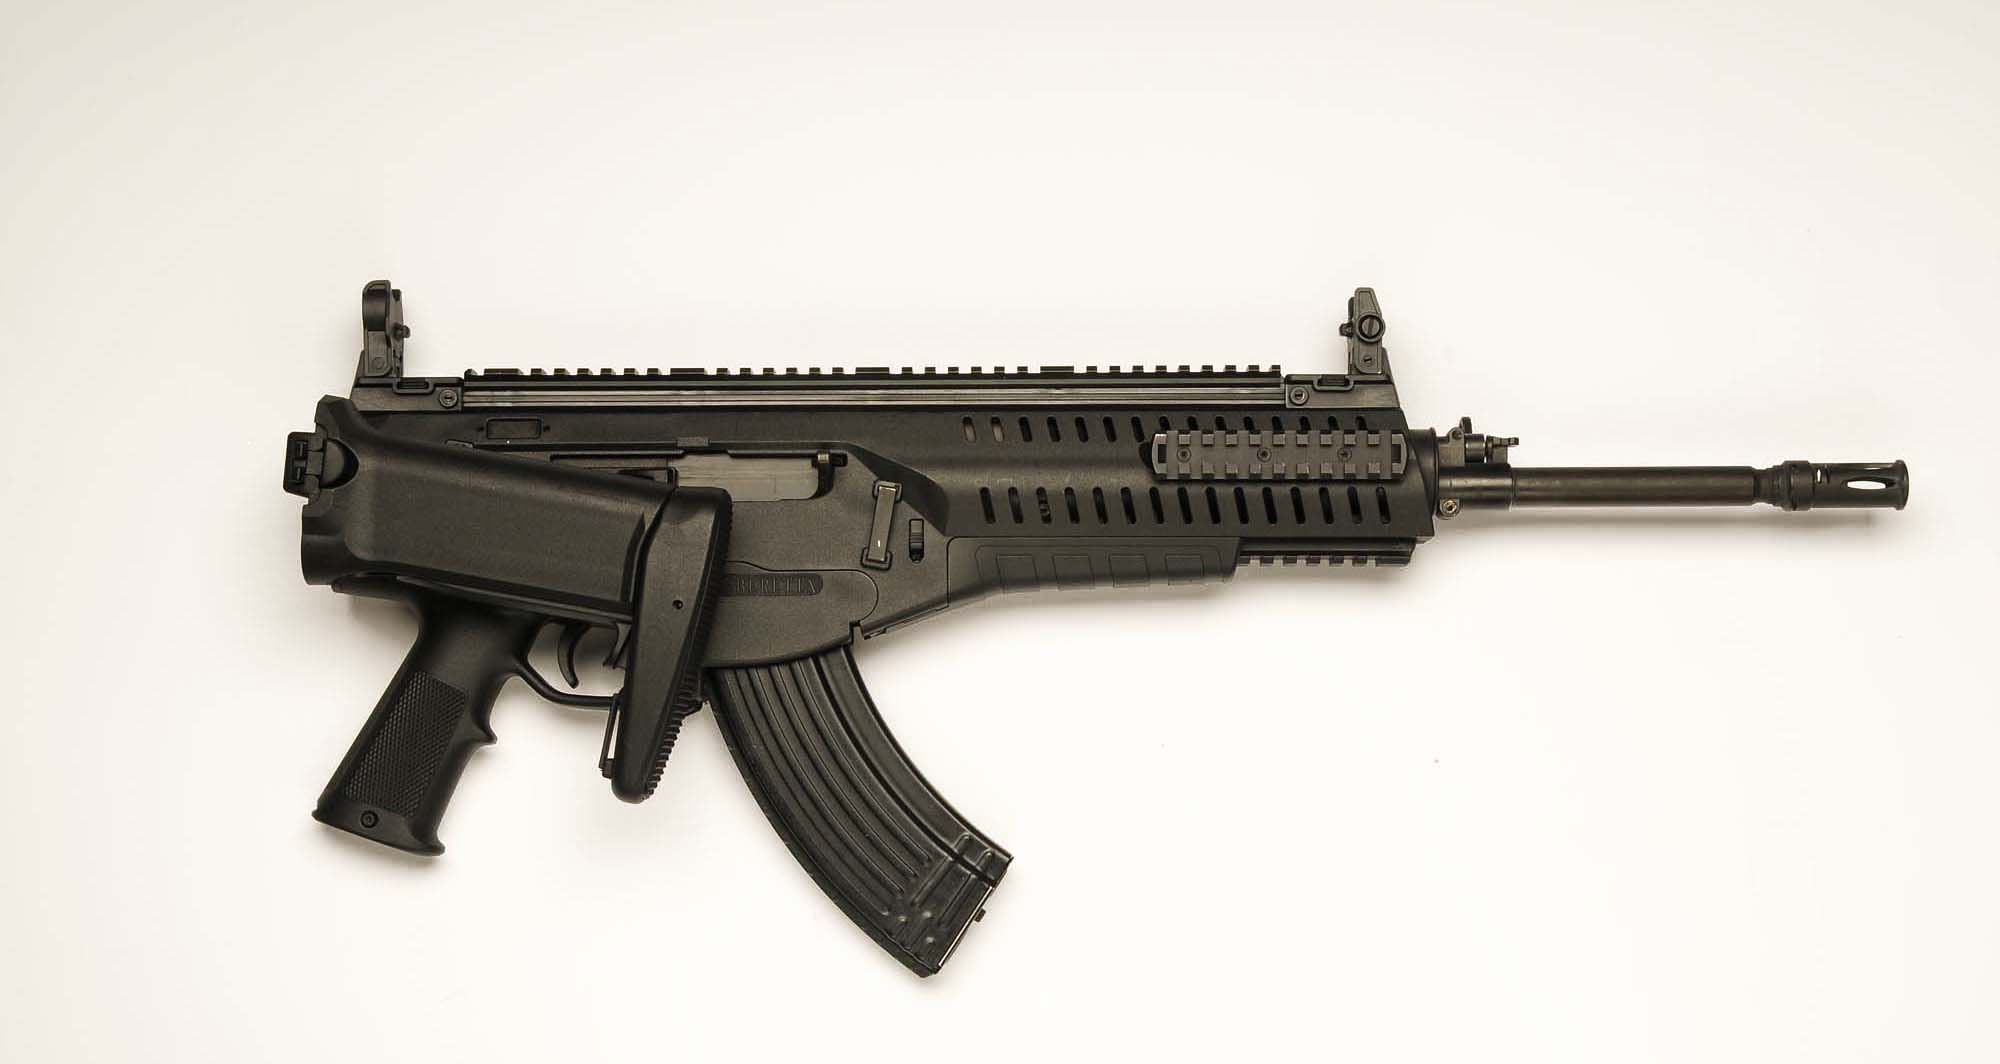 A view of the ARX 160  assault rifle  from the right side, with the stock folded